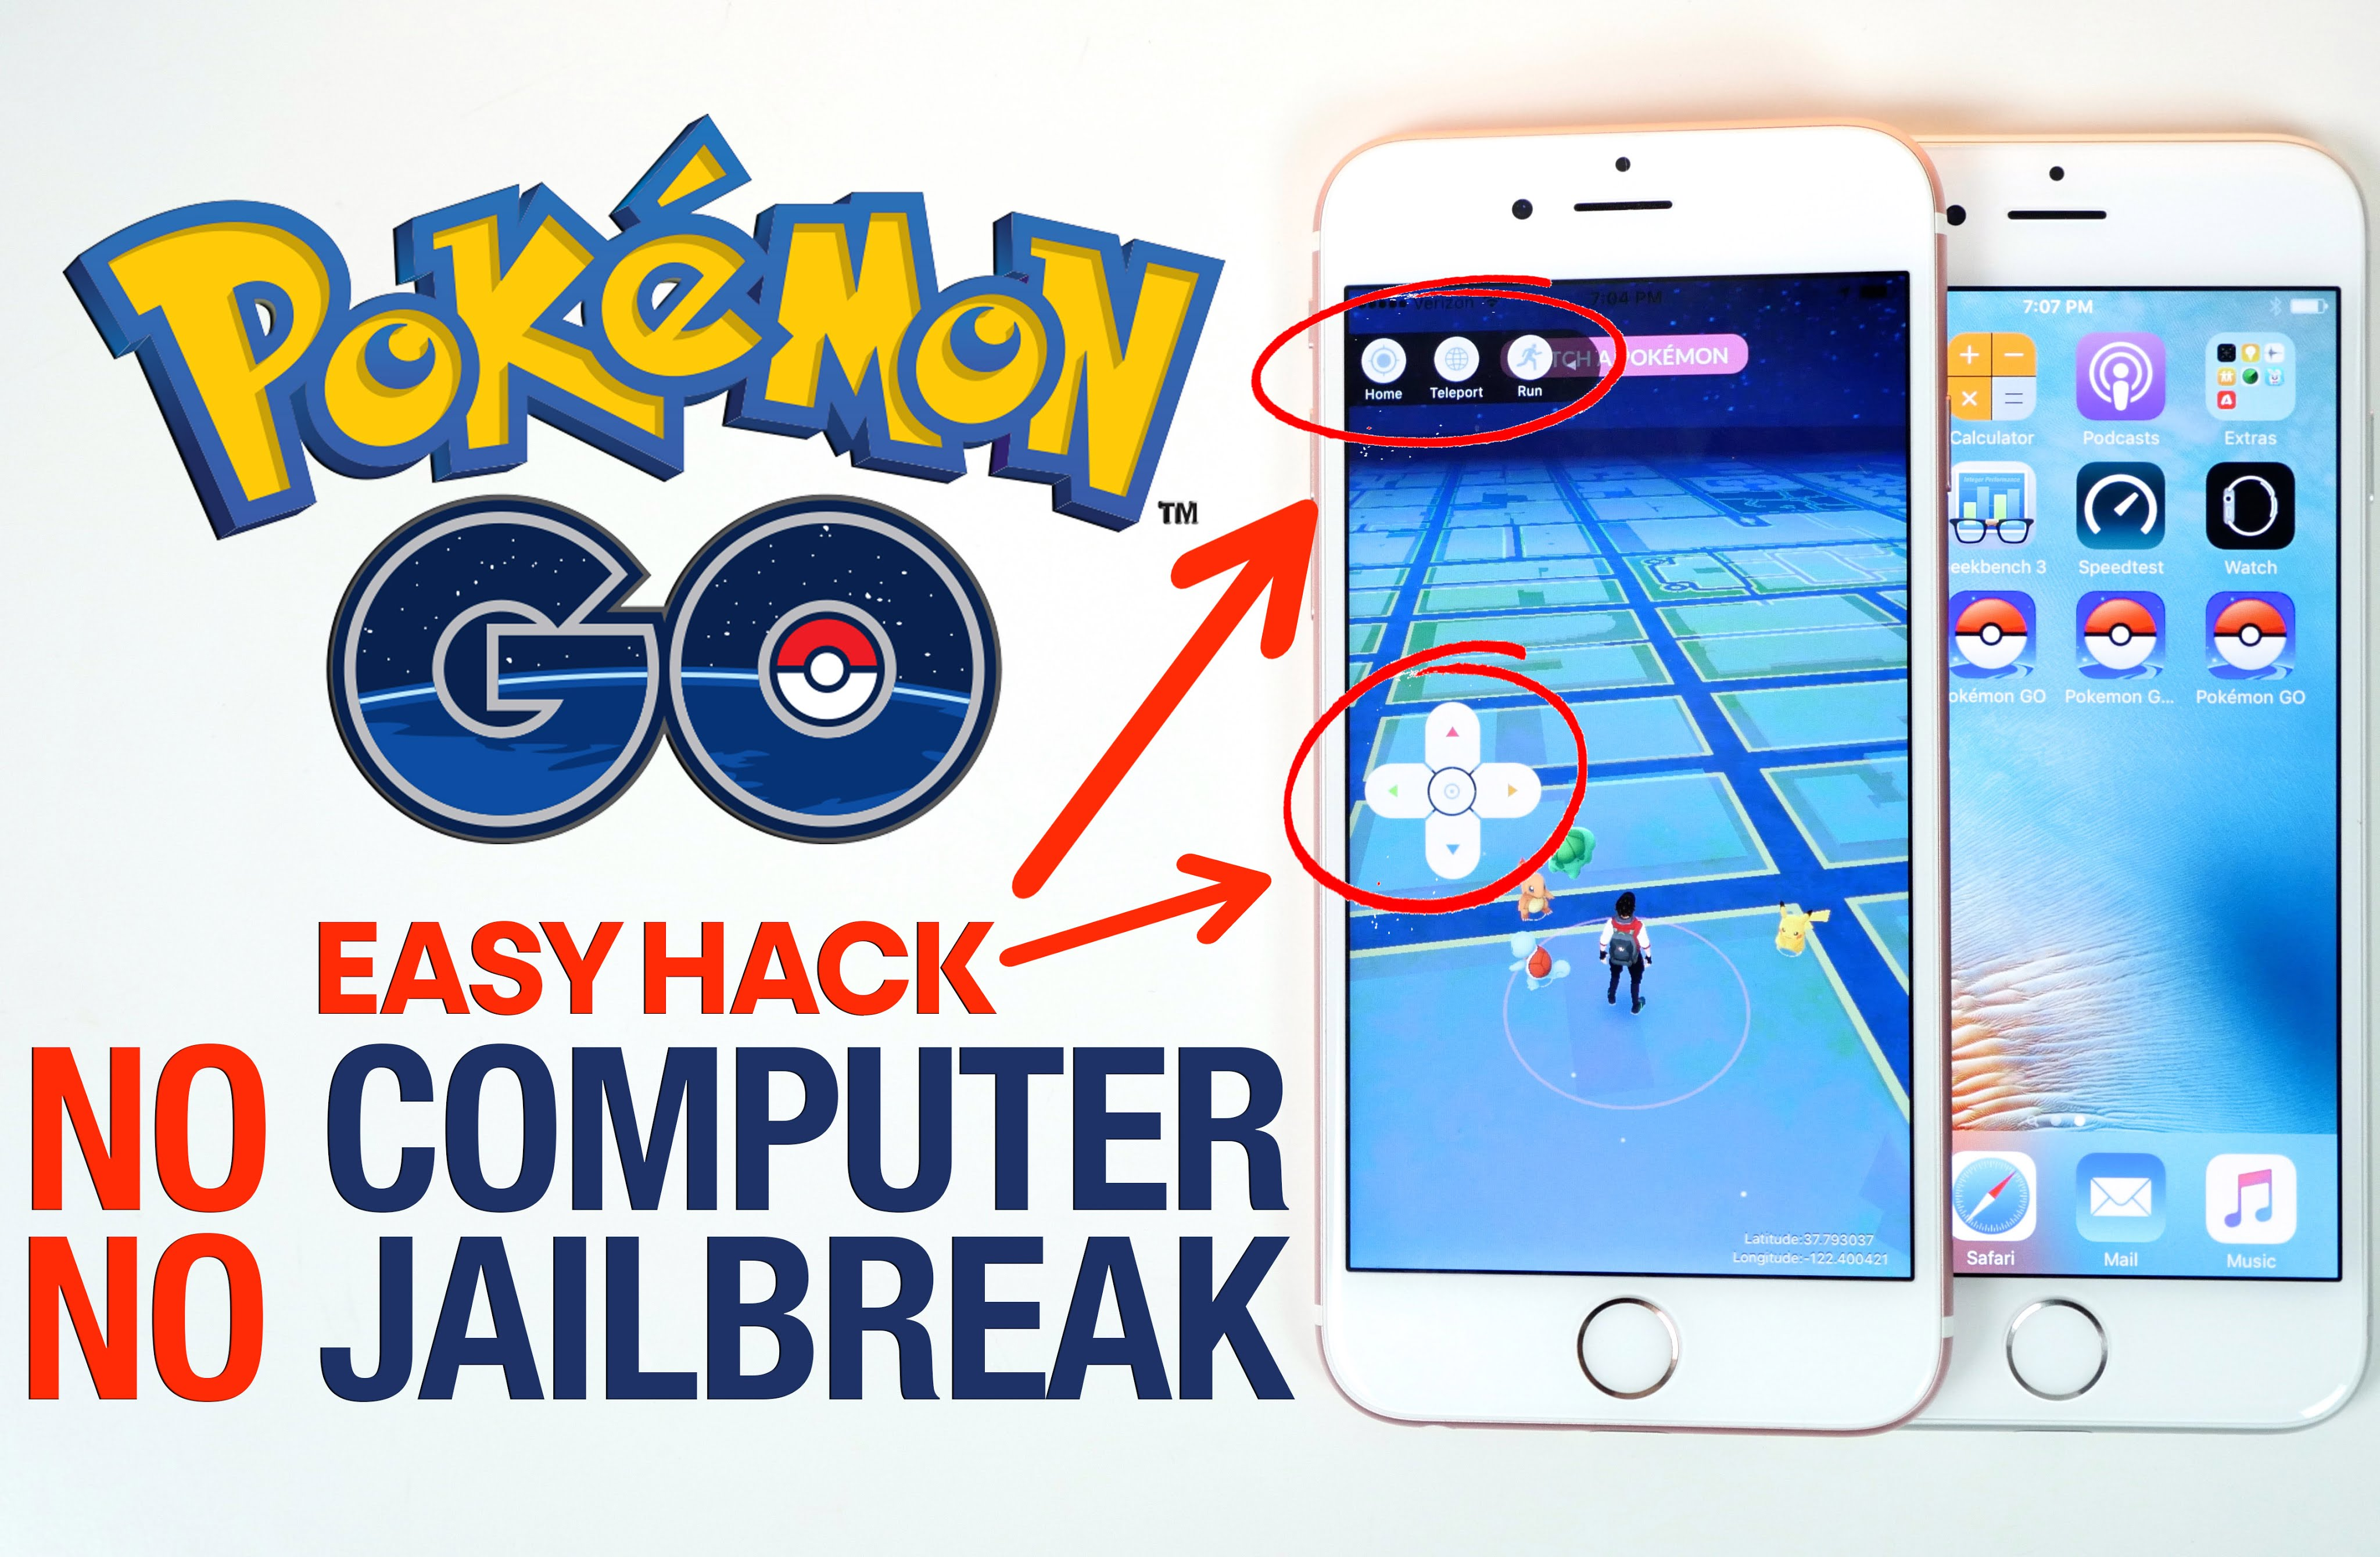 Download Pokemon Go++ 1.11.4 Hacked IPA On iPhone Without ...